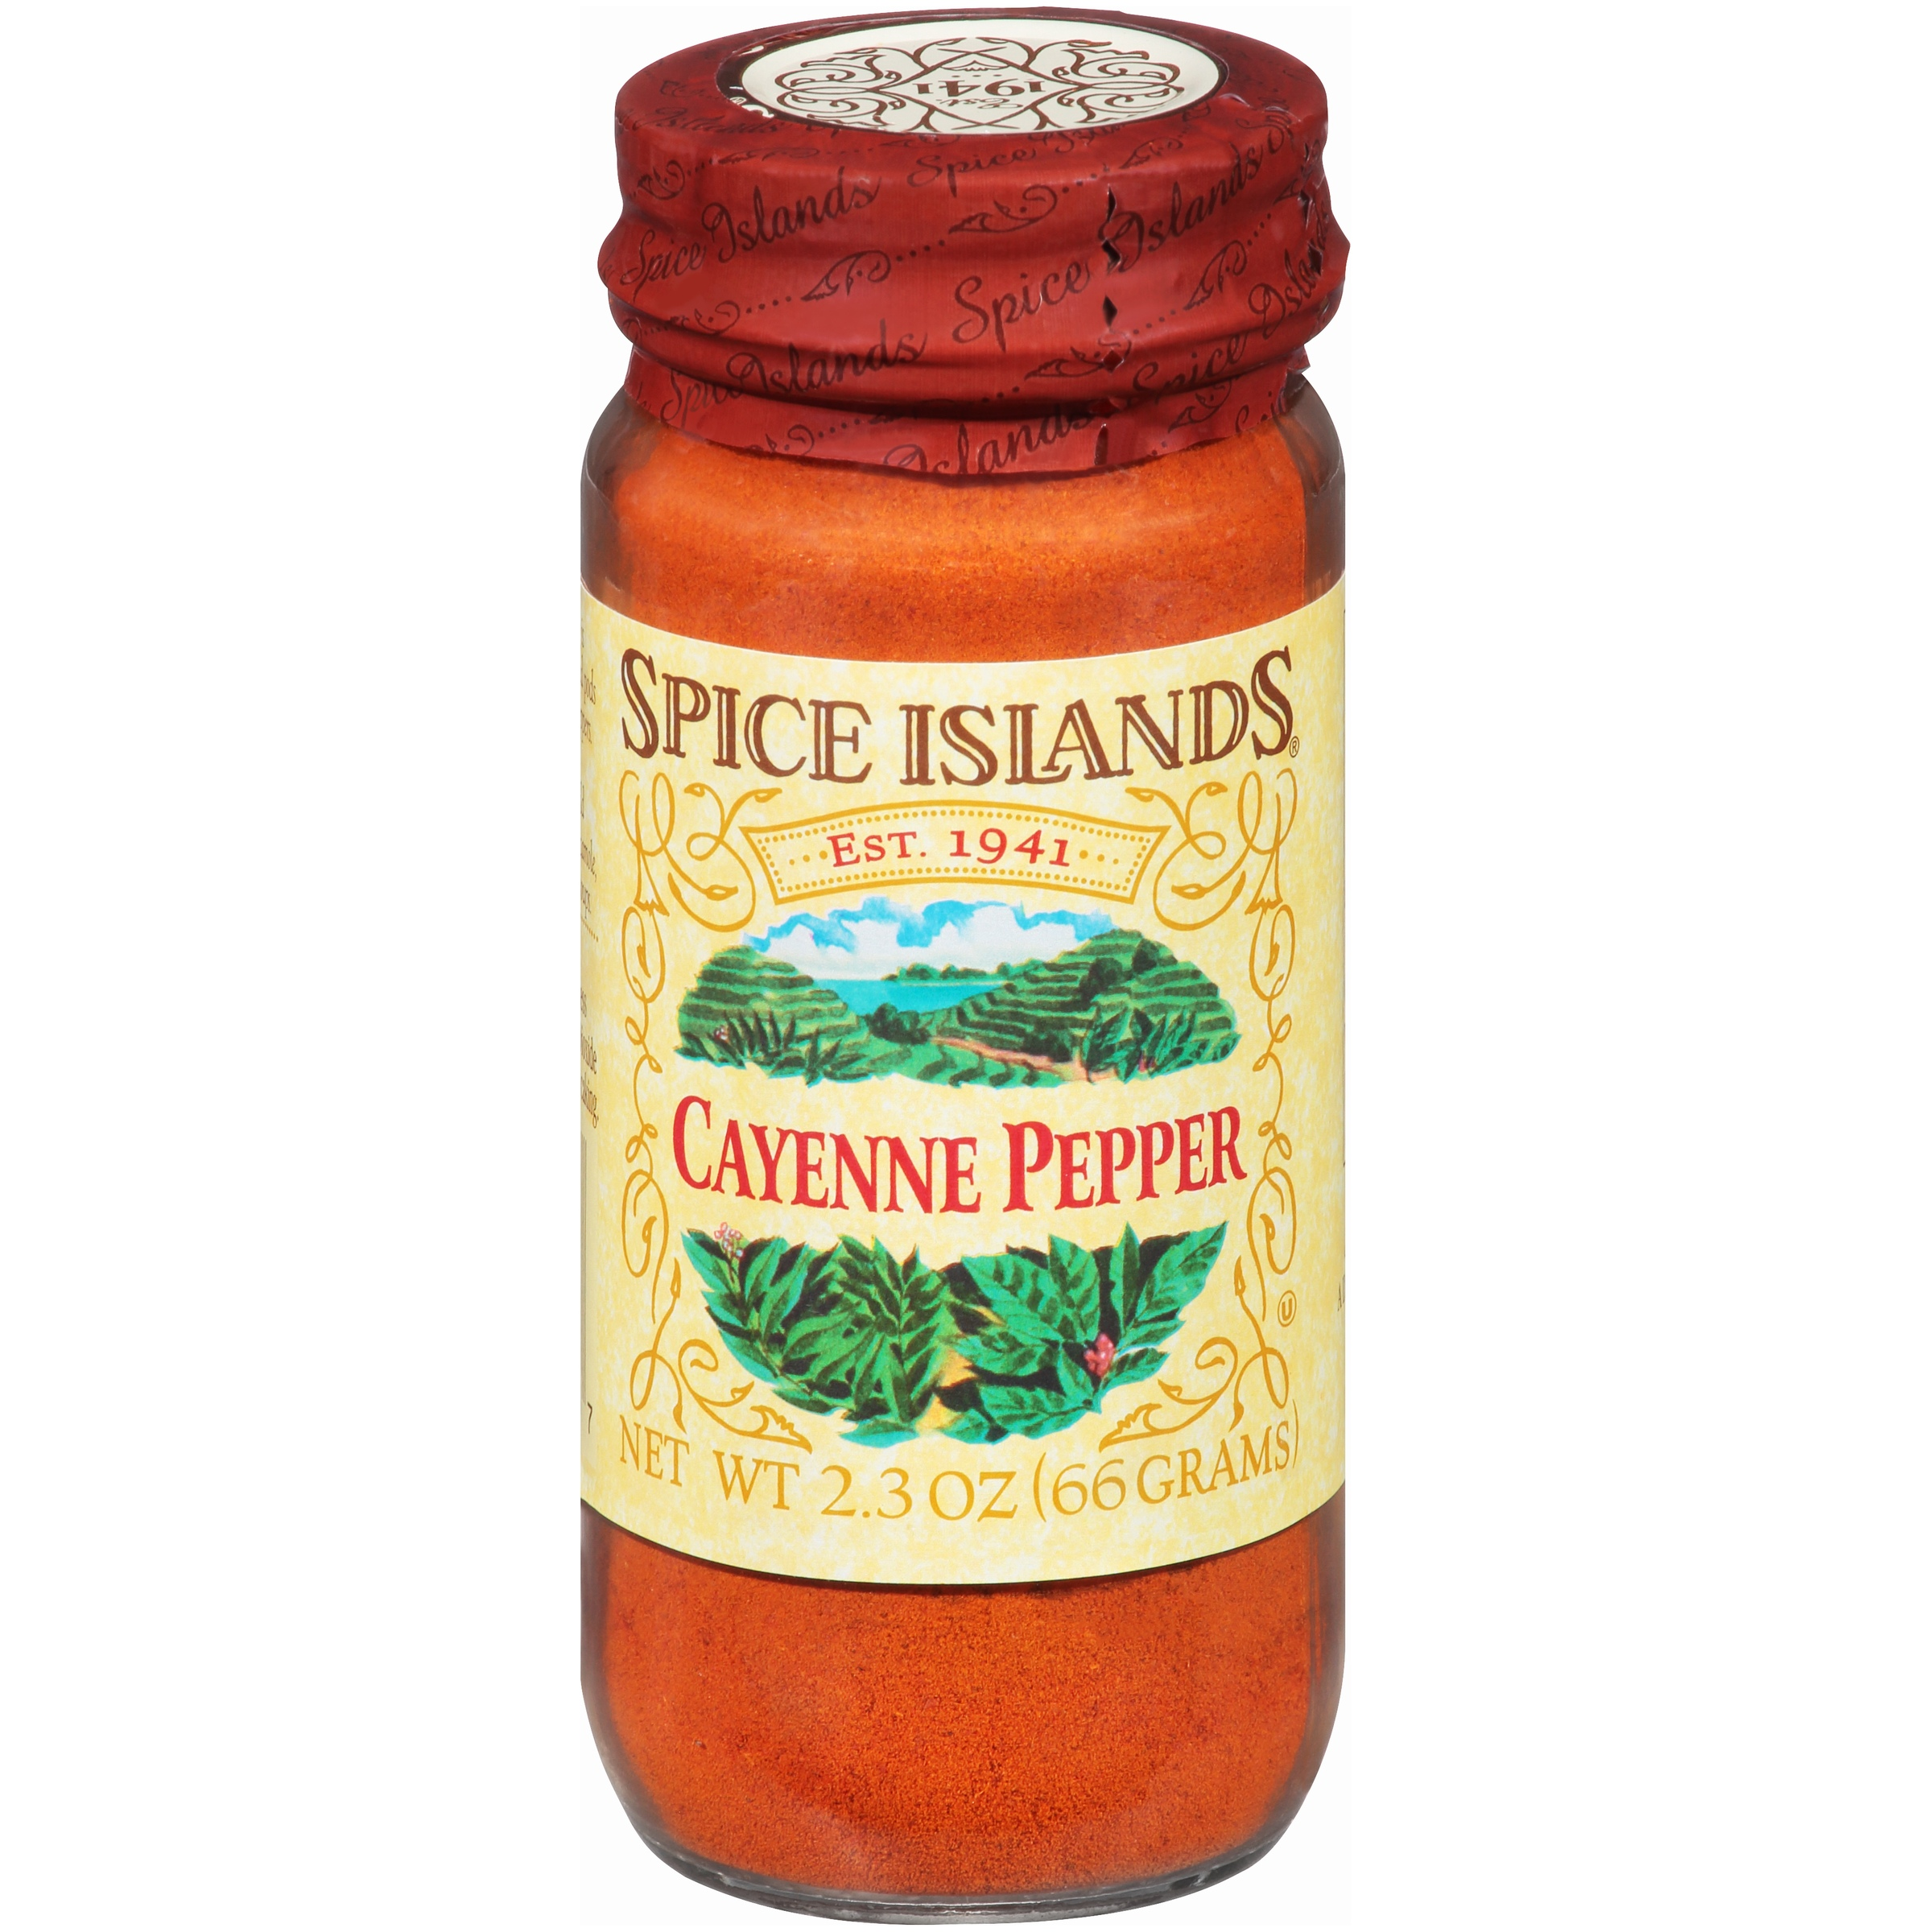 (2 Pack) Spice Islands® Cayenne Pepper 2.3 oz. Jar